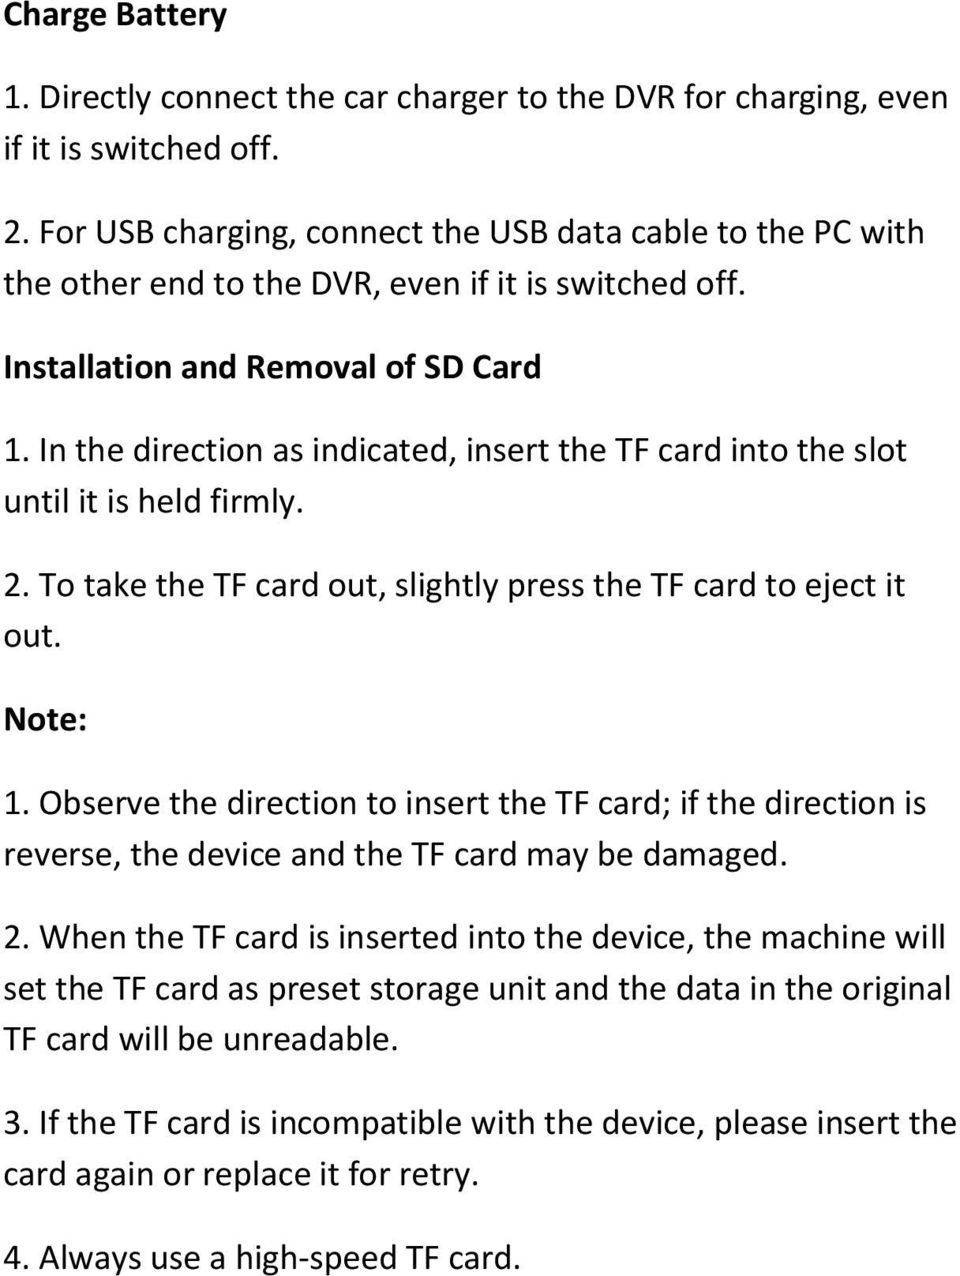 In the direction as indicated, insert the TF card into the slot until it is held firmly. 2. To take the TF card out, slightly press the TF card to eject it out. Note: 1.